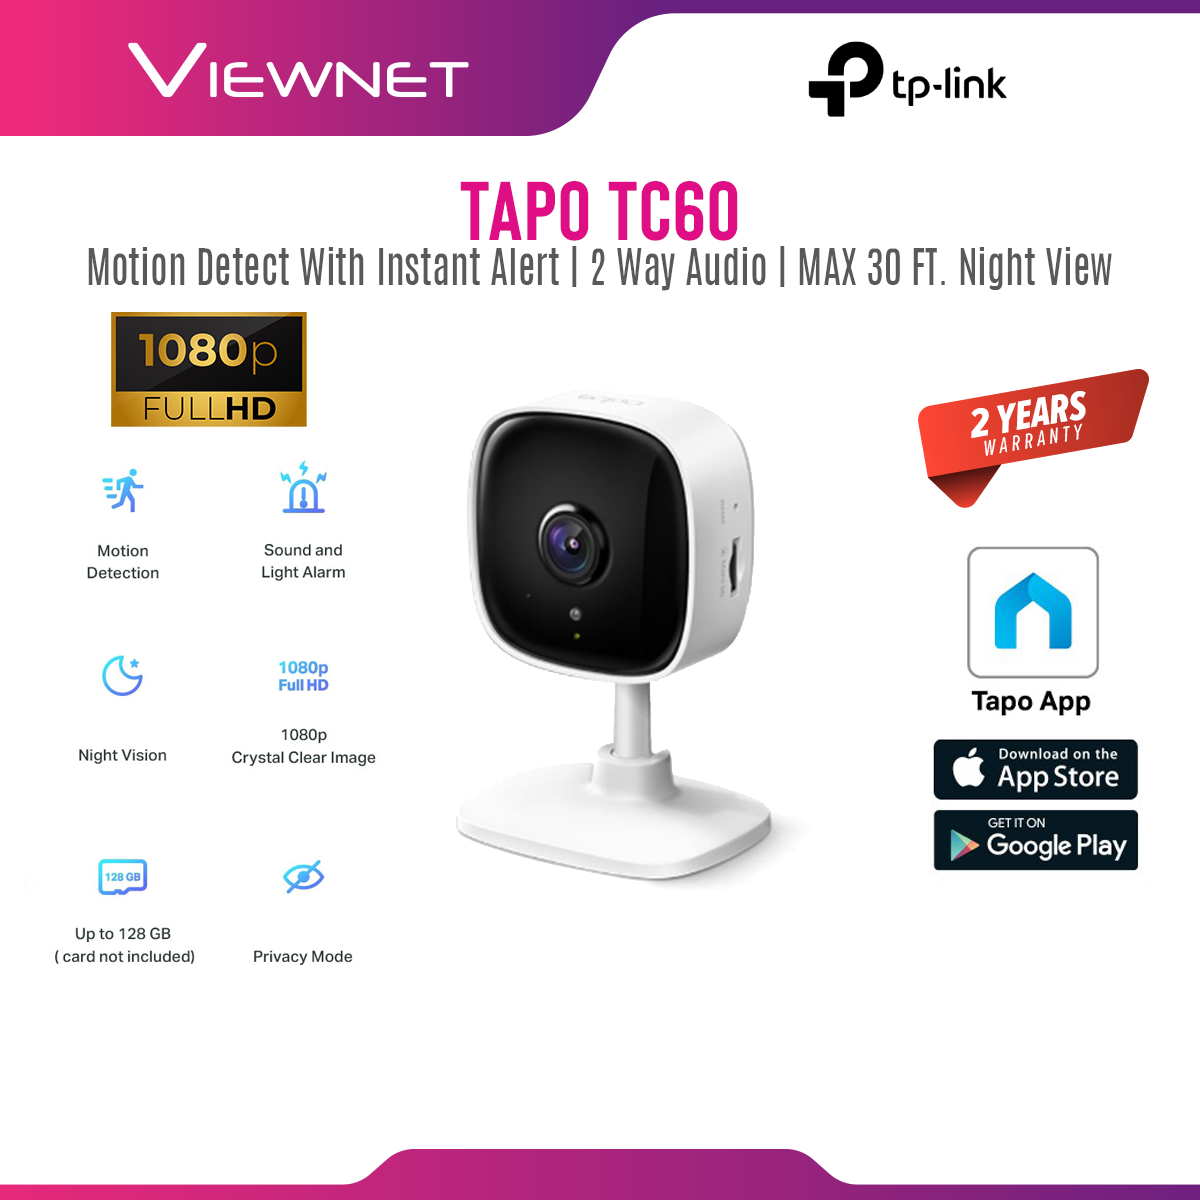 [ONLINE EXCLUSIVE 💥]TP-Link Tapo TC60 / TAPO C110 1080P Full HD Wireless WiFi Home Security Surveillance IP Camera